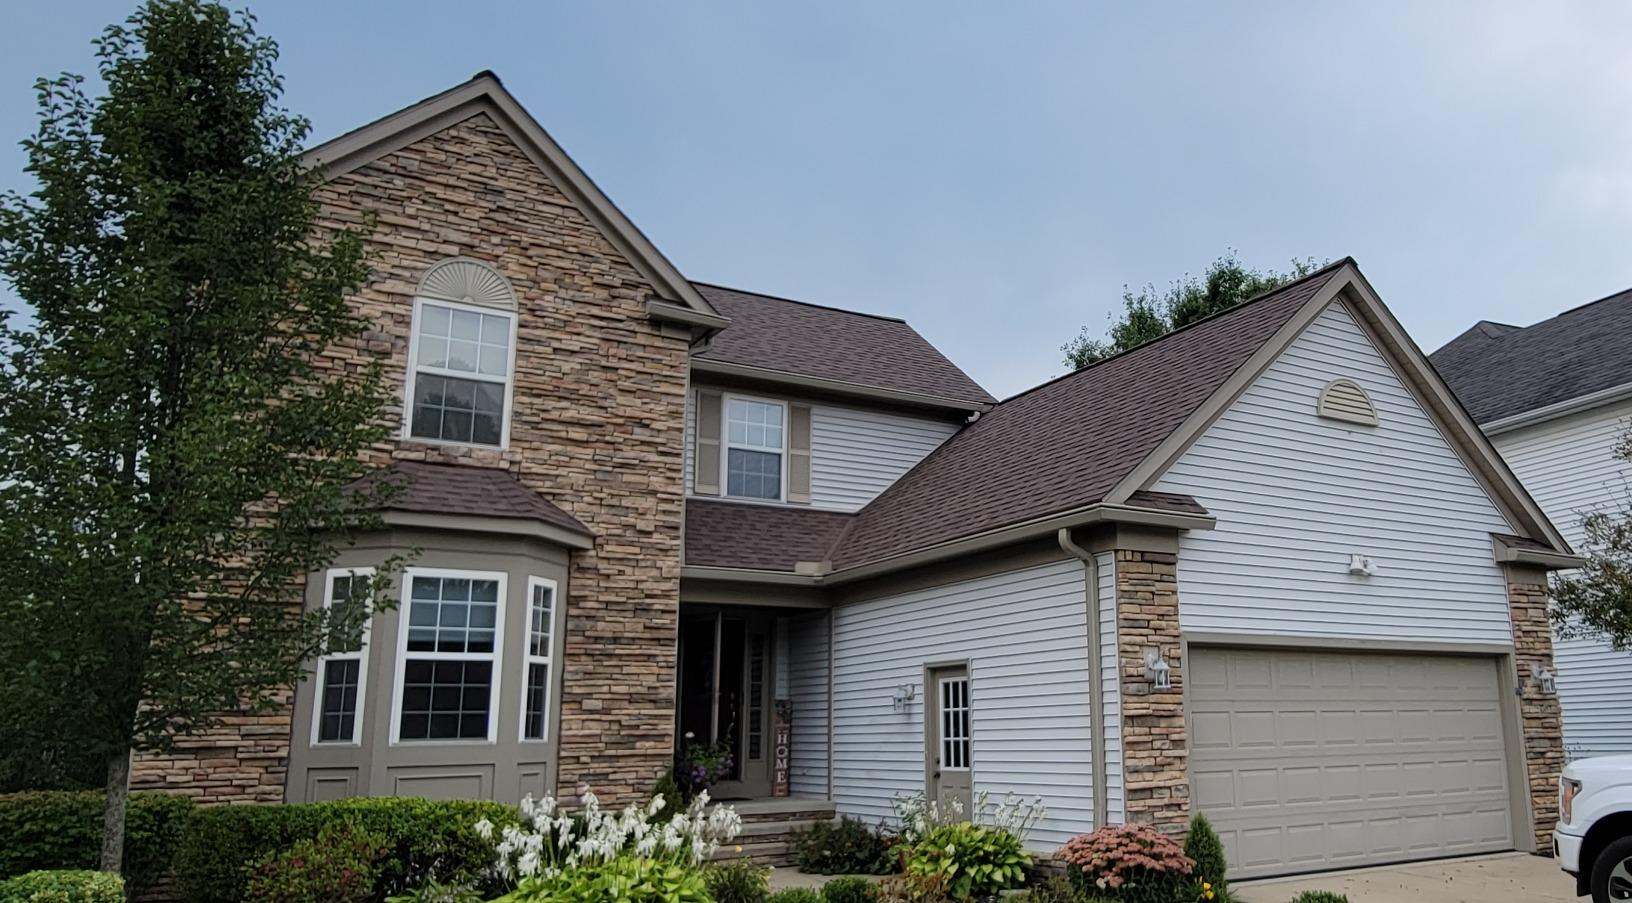 Chardon Roof Replacement - After Photo